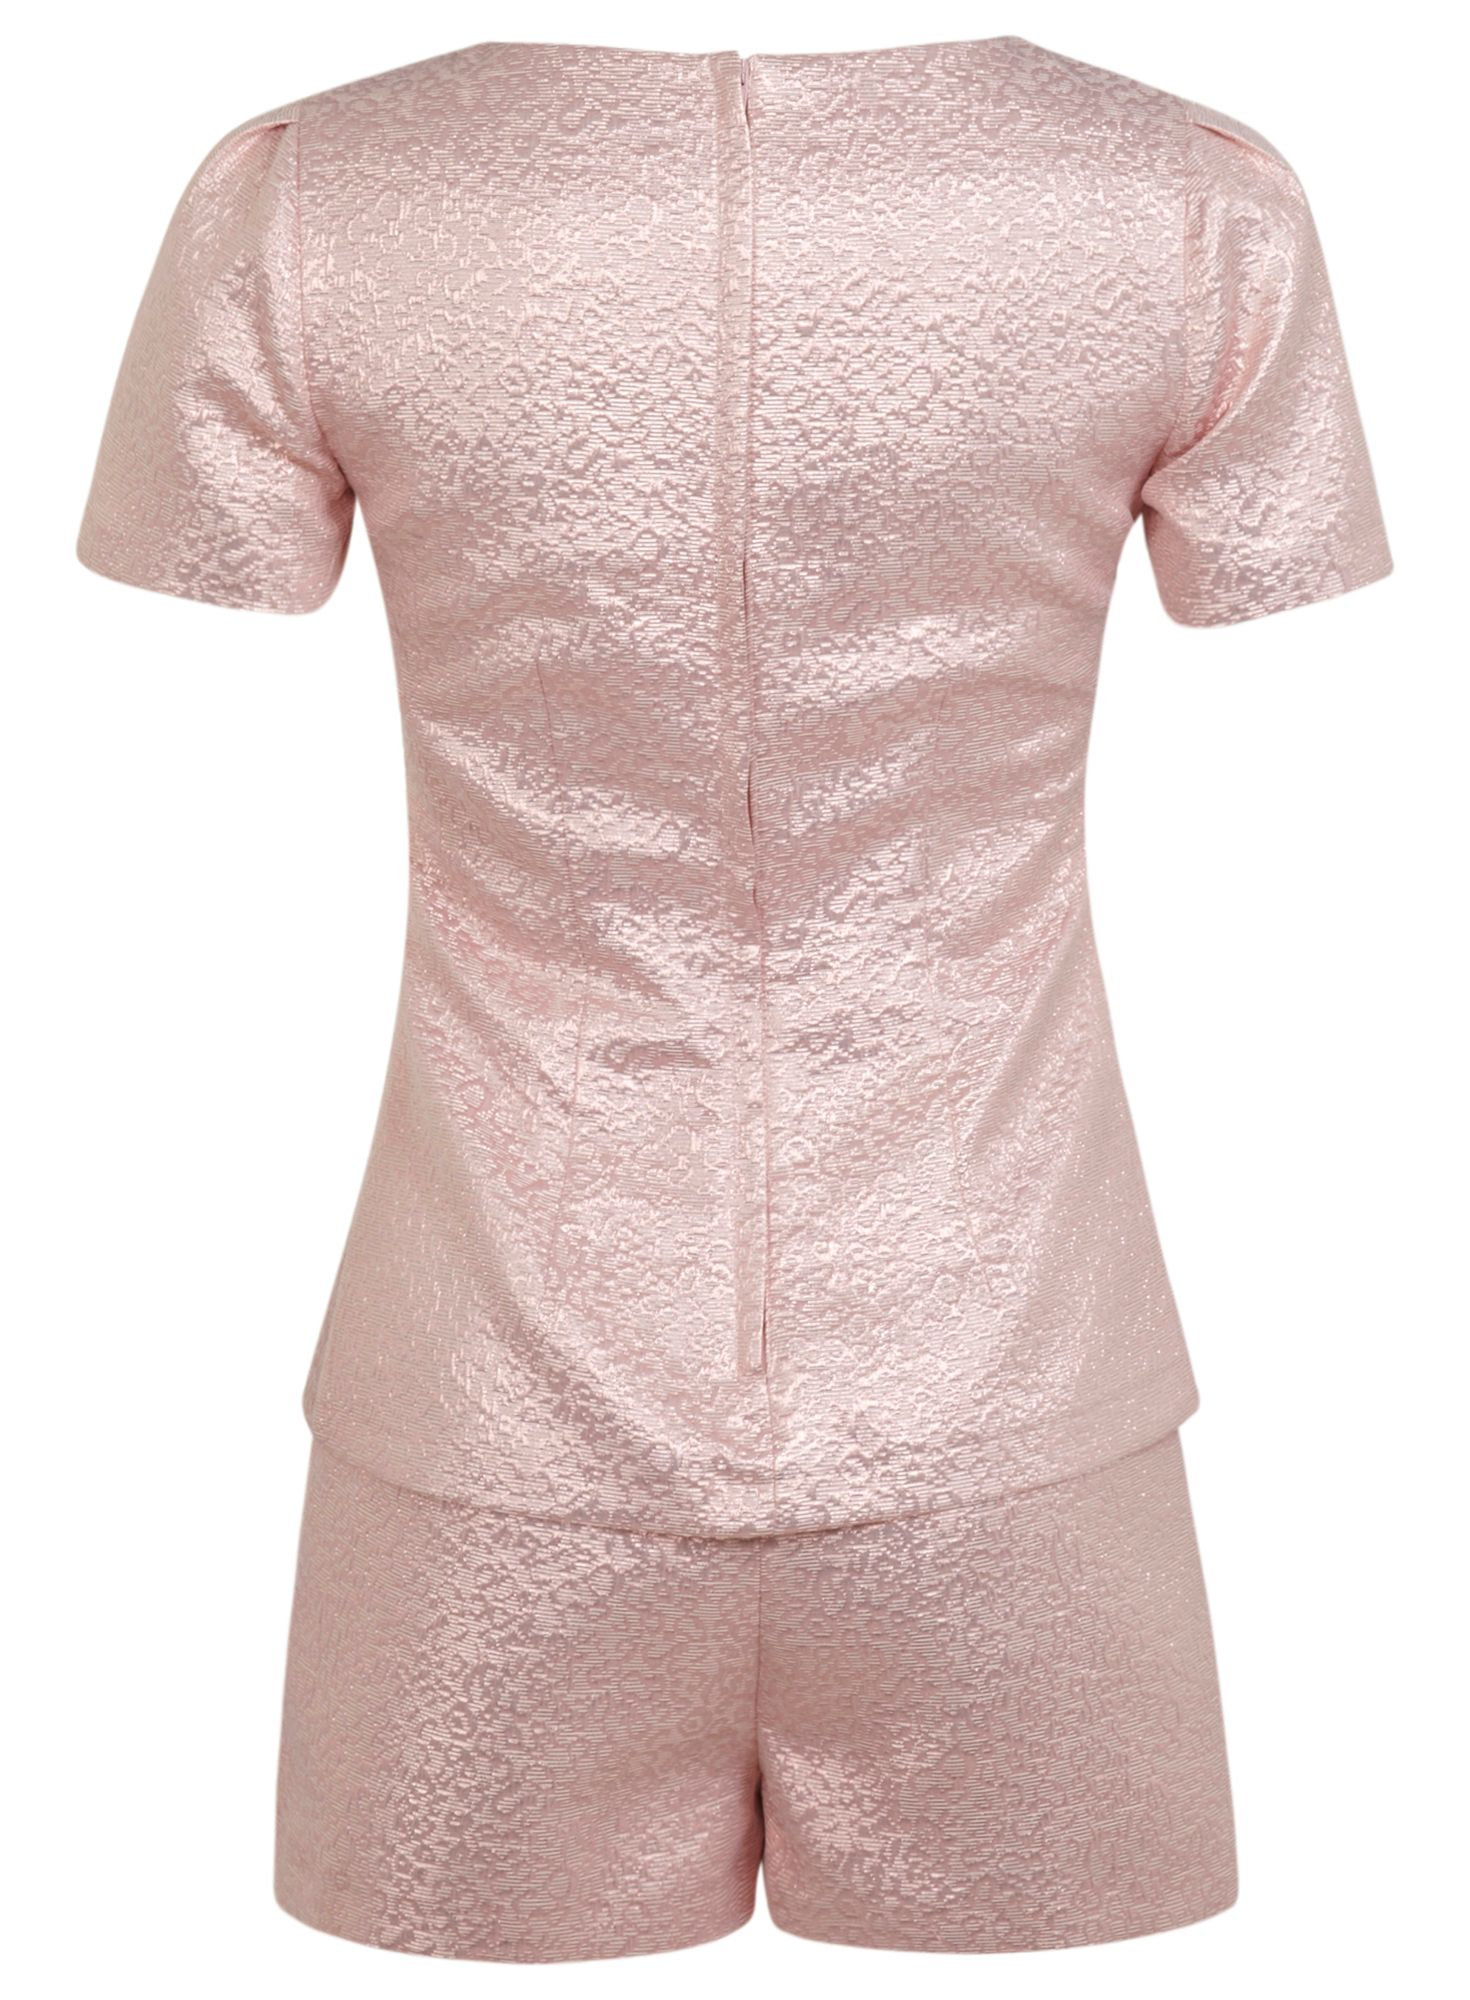 Shimmer playsuit